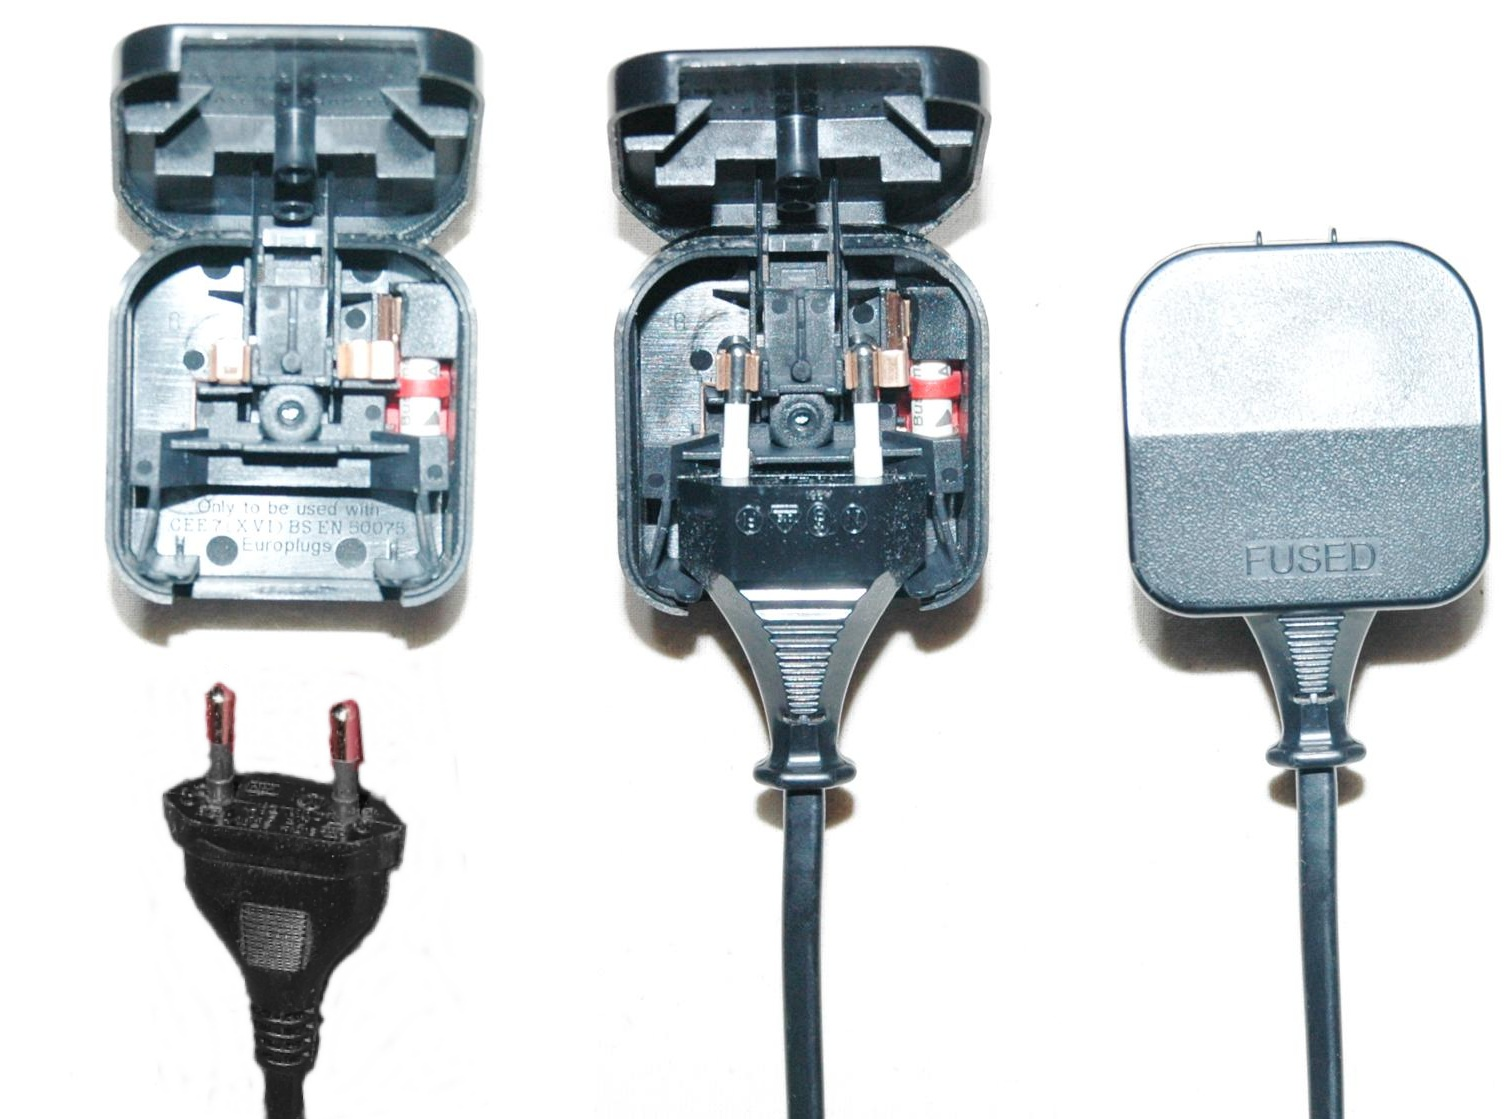 wiring a european plug wiring image wiring diagram this electrical outlet eliminates the need for power strips and on wiring a european plug